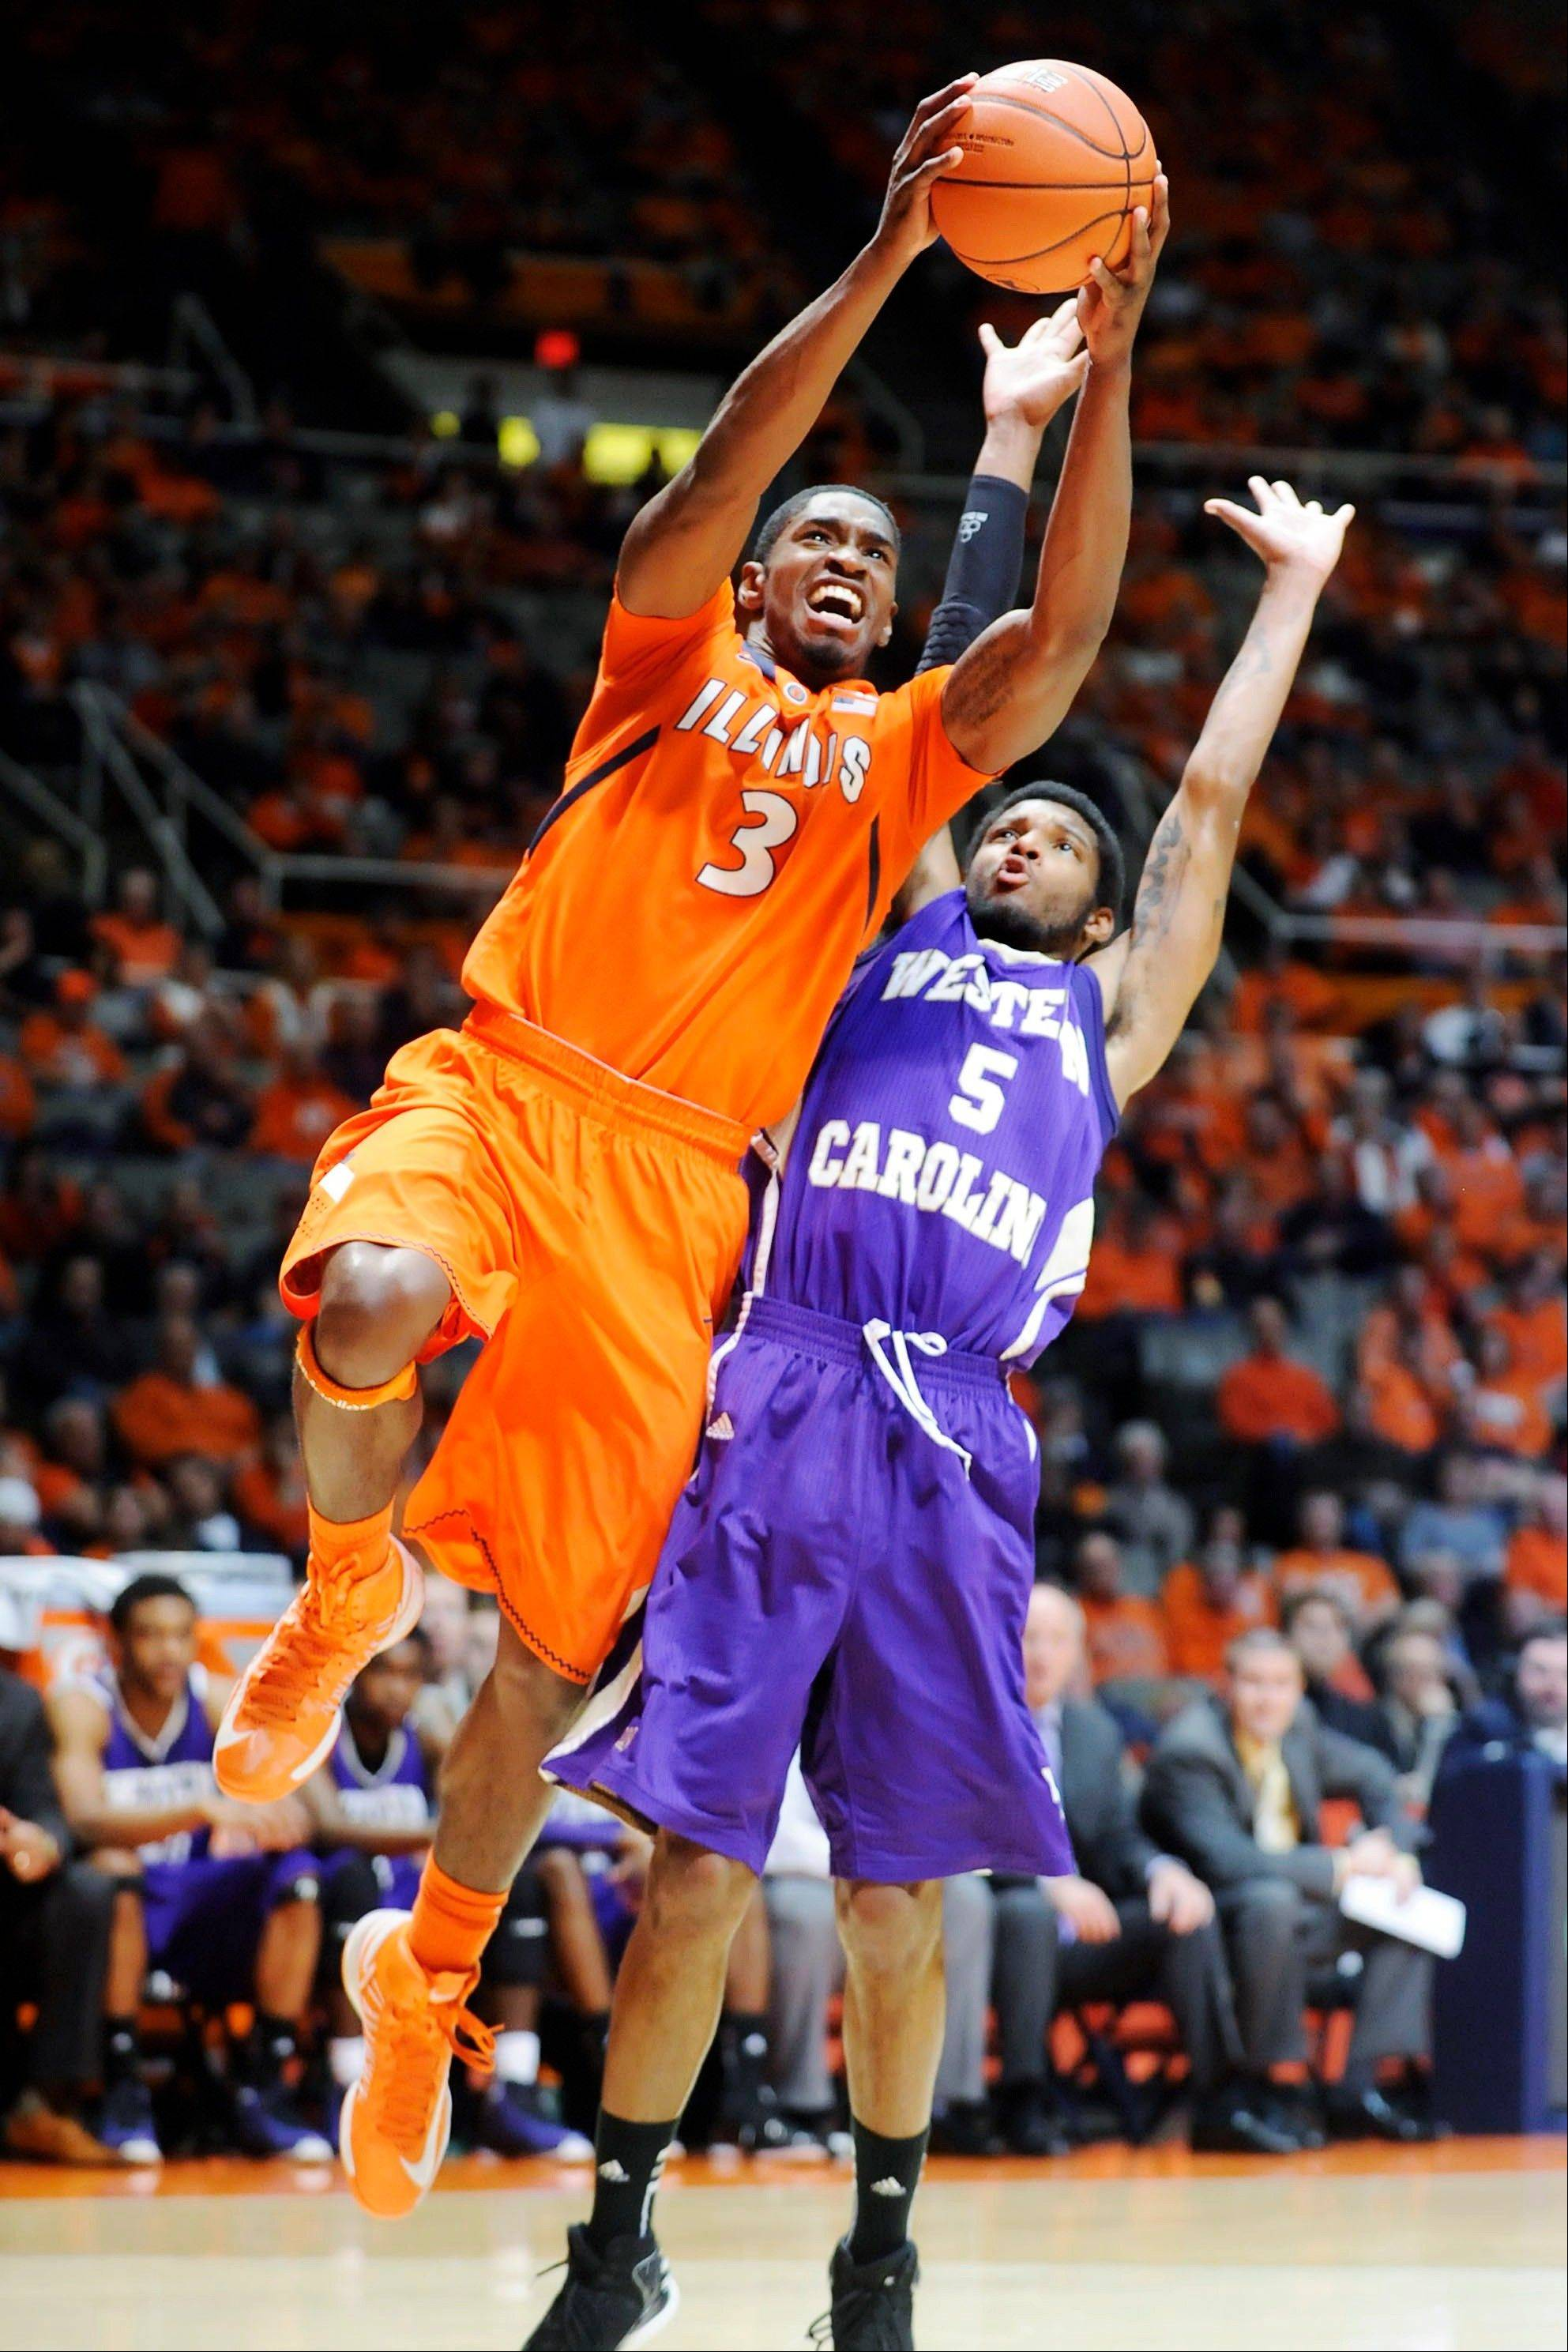 Illinois' Brandon Paul shoots against Western Carolina's Trey Sumler Tuesday during the first half in Champaign.